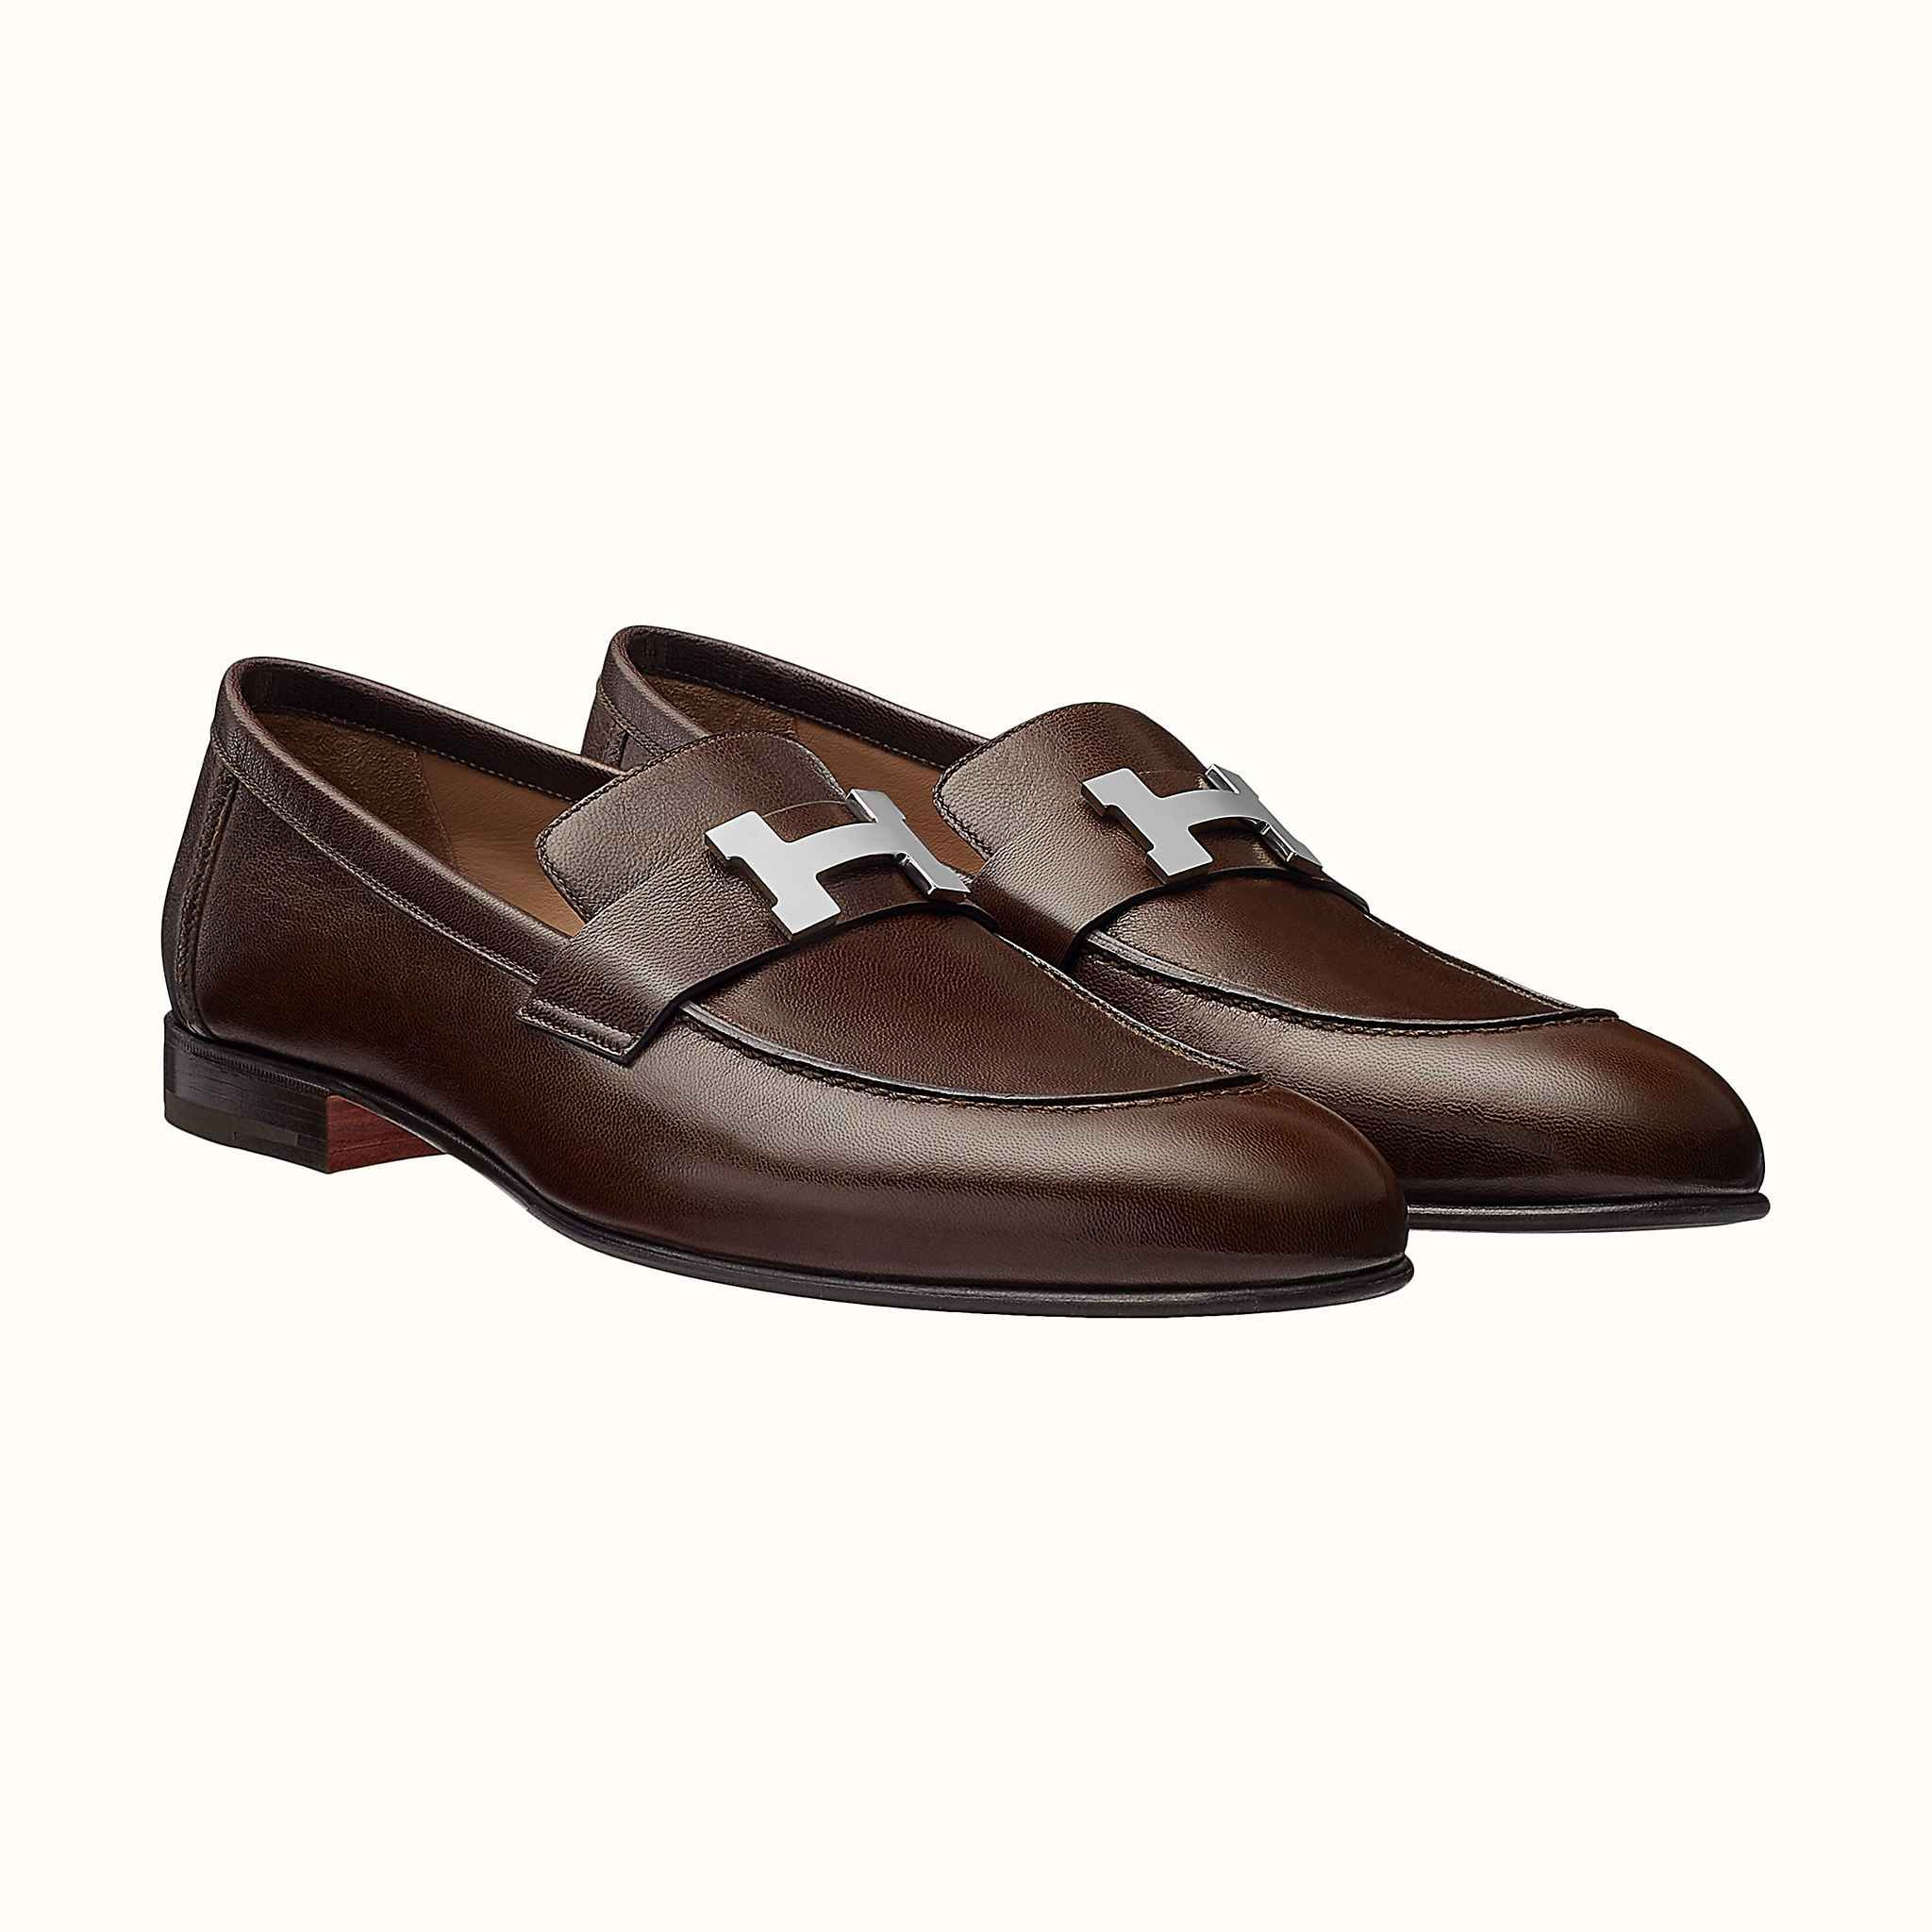 Paris loafer in 2020 | Stylish shoes for men, Mens boots